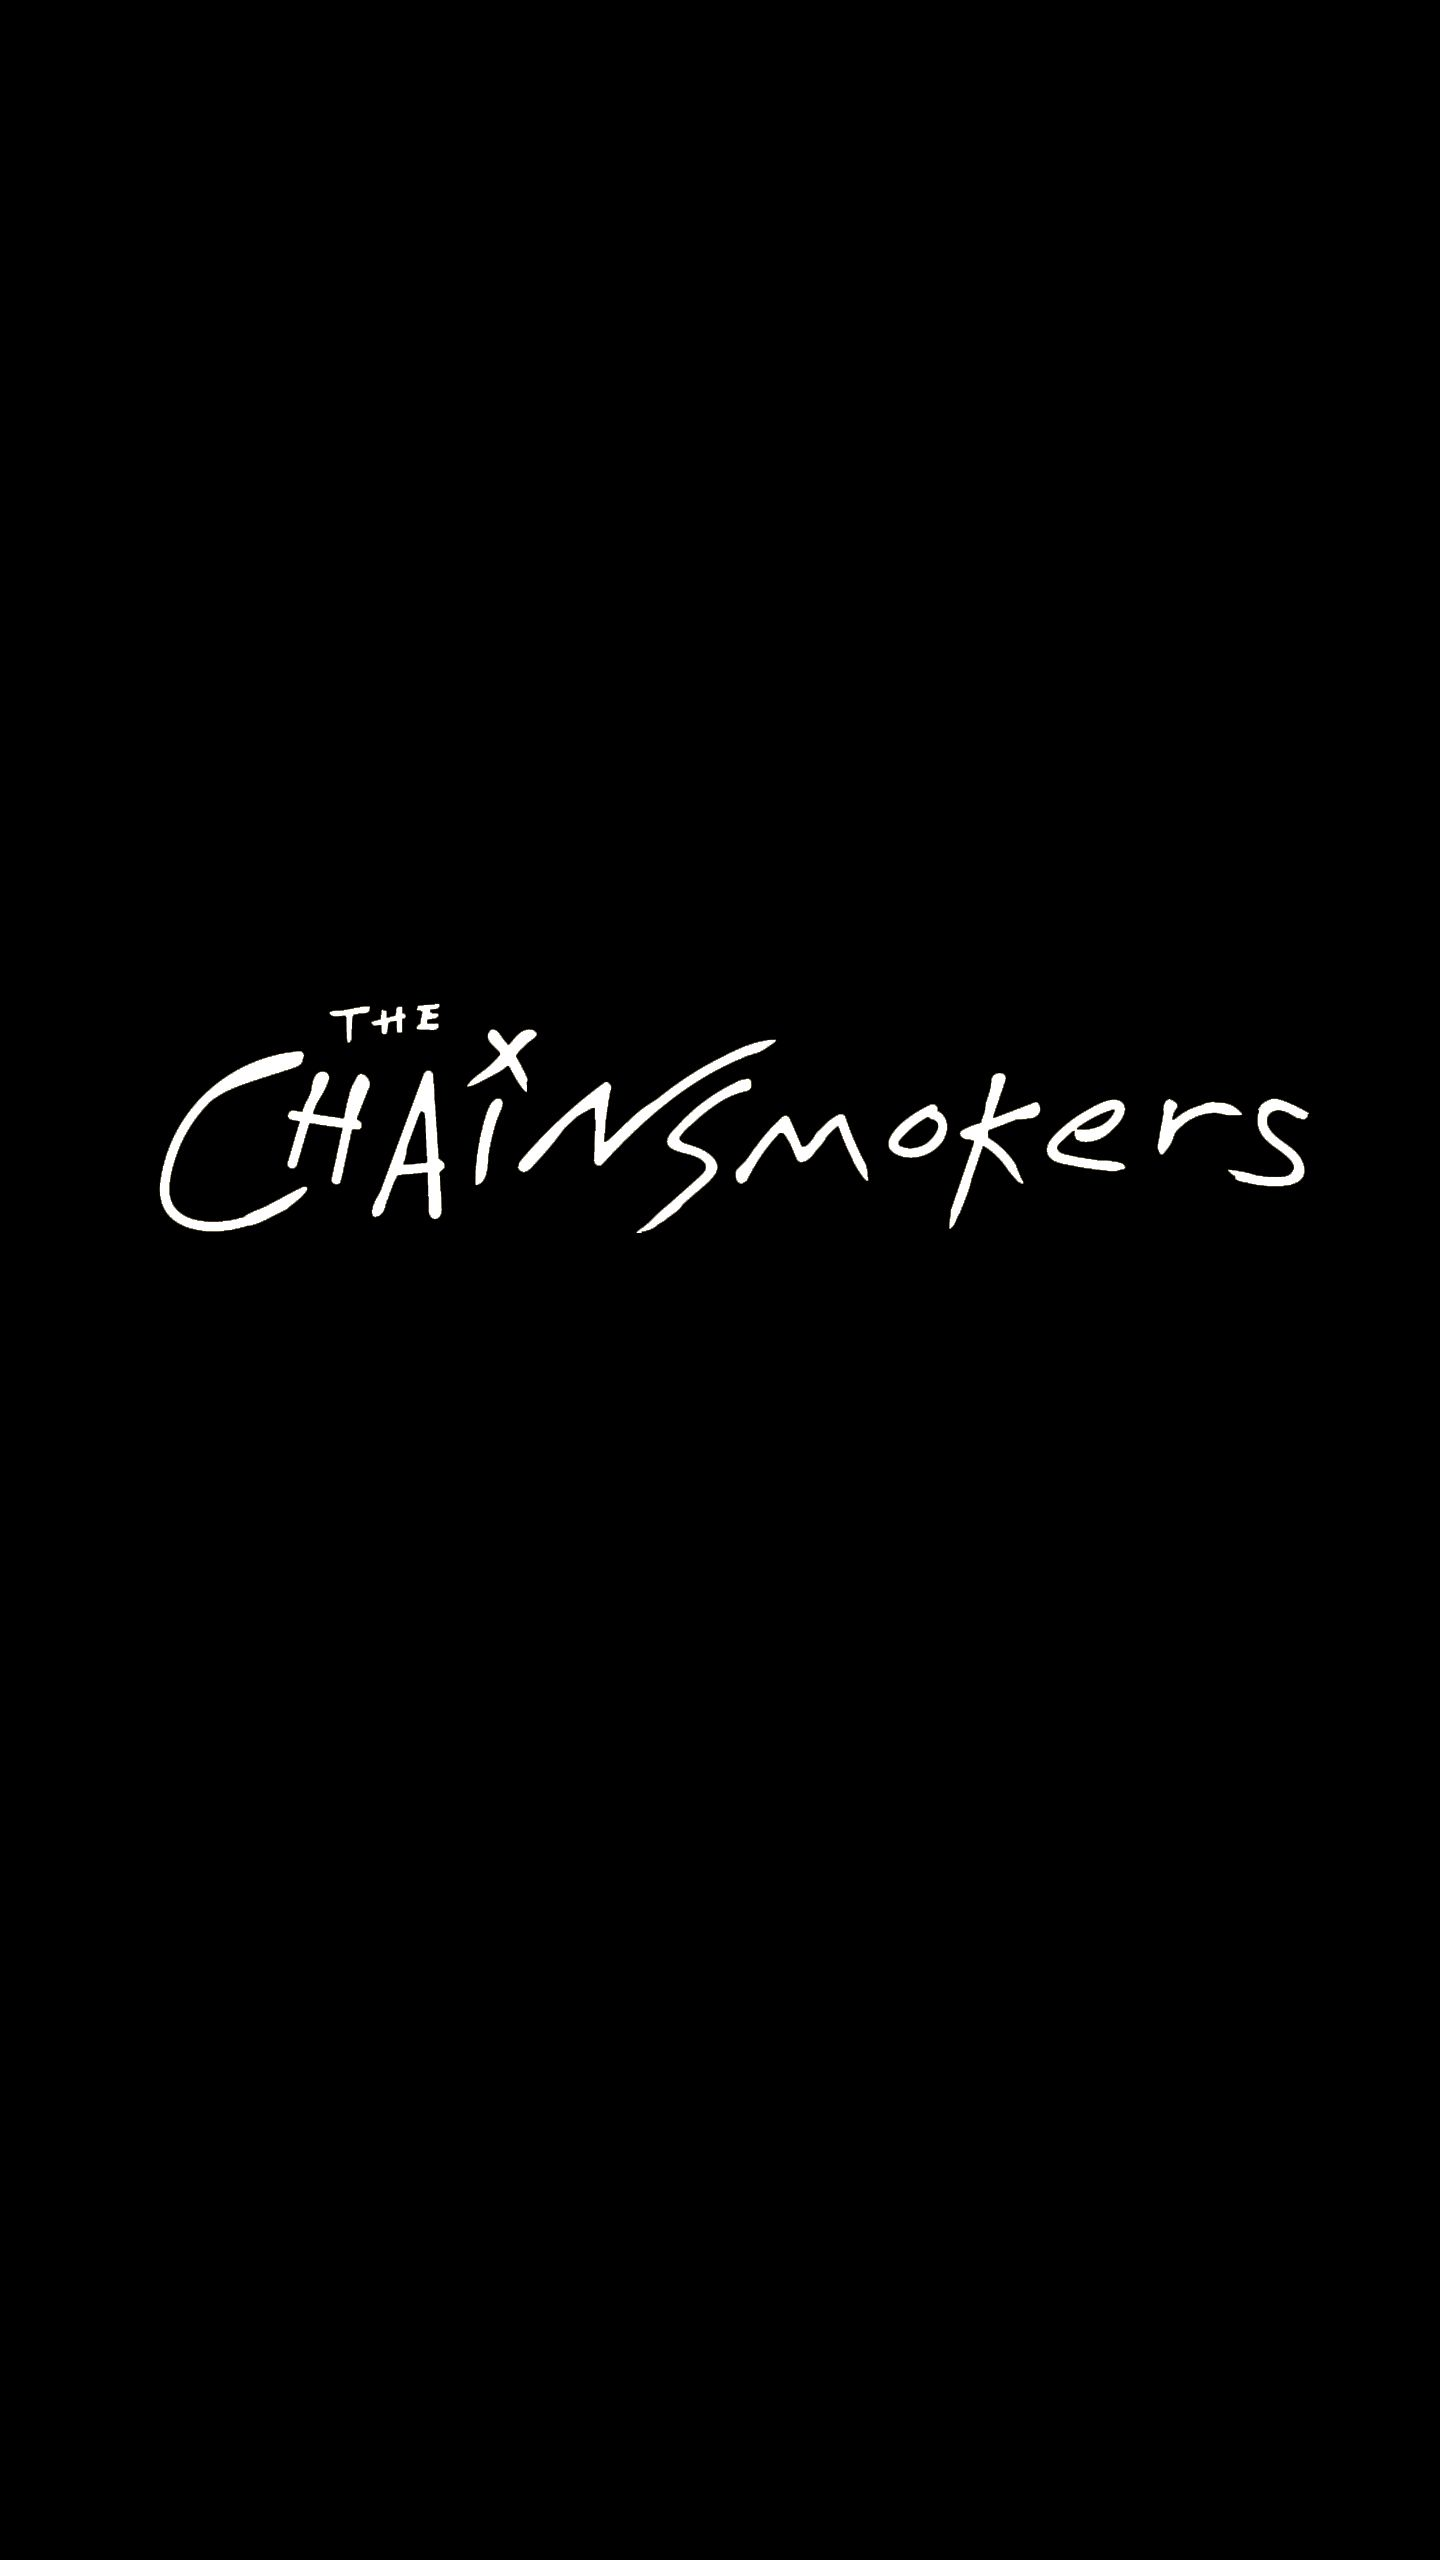 The Chainsmokers Wallpaper 9 16 Qhd 2020 Stussy 壁紙